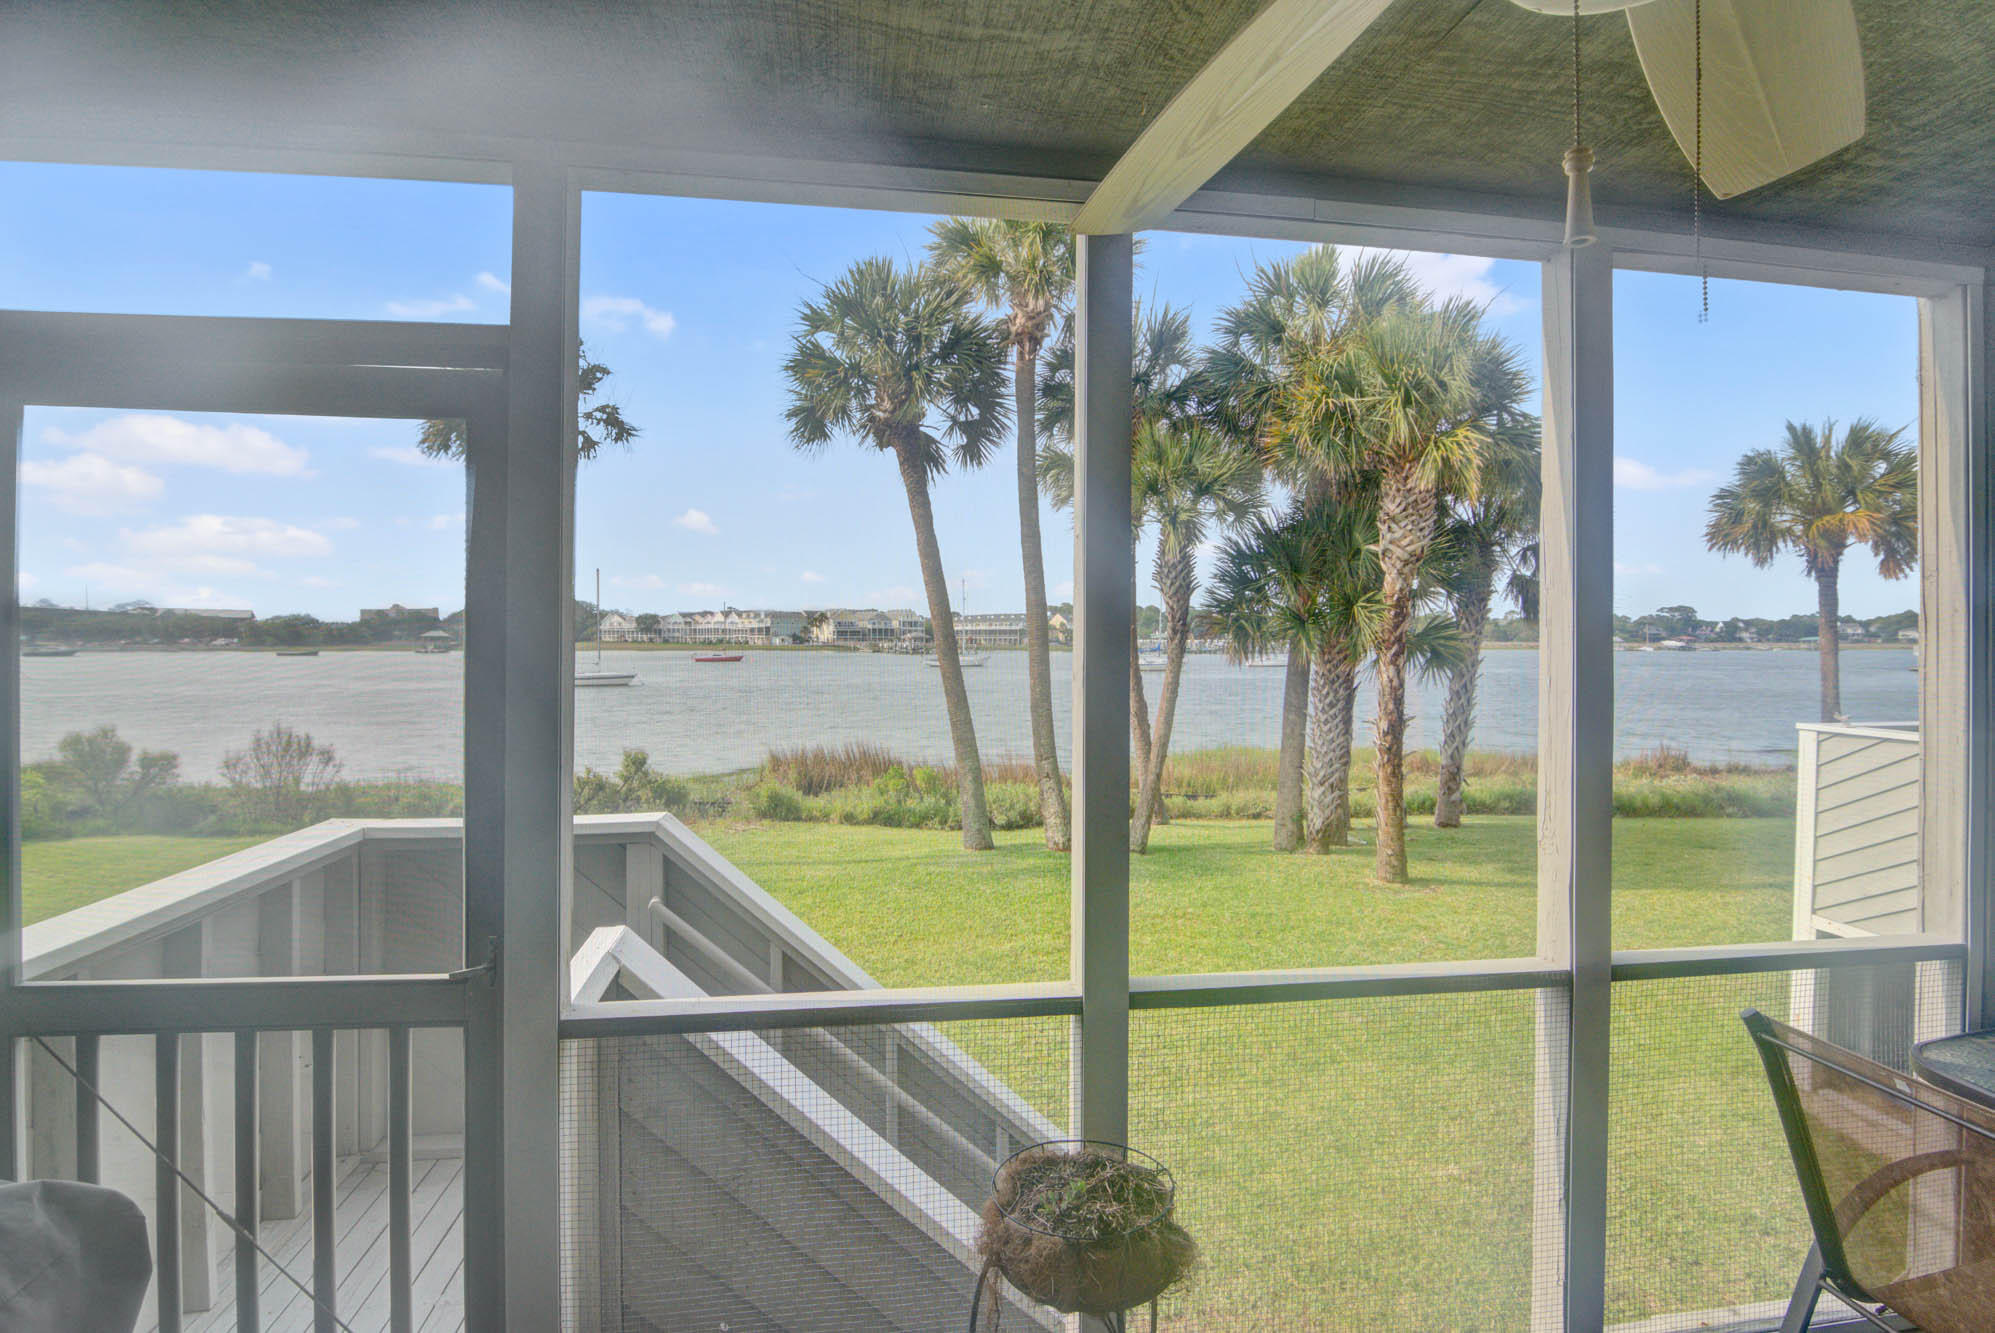 Mariners Cay Homes For Sale - 19 Mariners Cay, Folly Beach, SC - 6